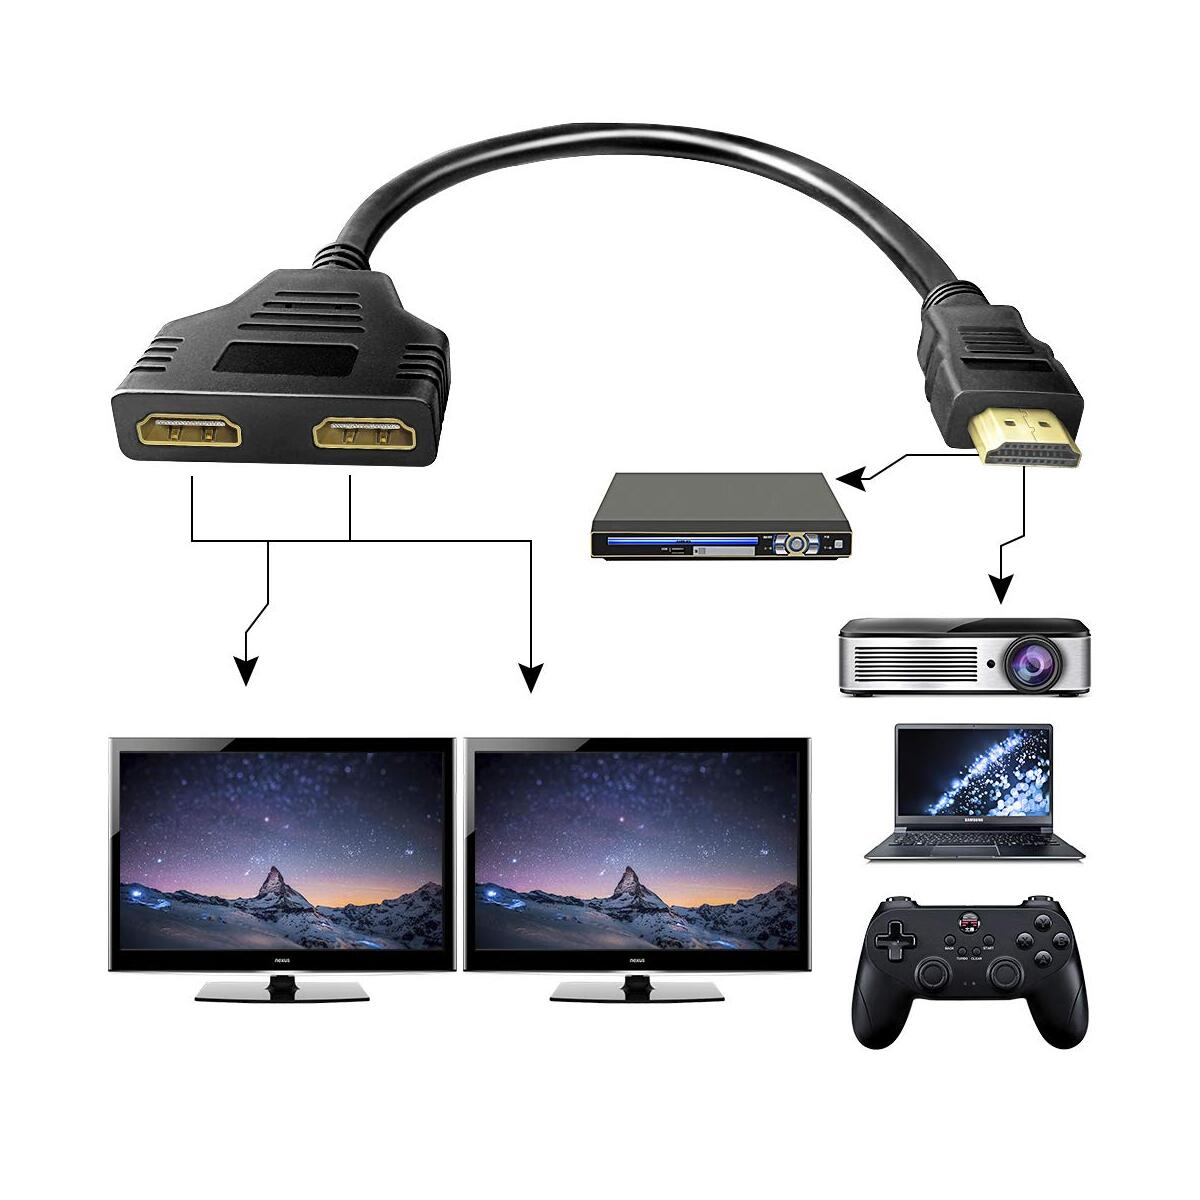 HDMI Cable 1080P Male to Dual HDMI Female,HDMI Splitter Adapter for Xbox PS4 Blu-Ray Player HDTV,Support Two TVs at The Same Time